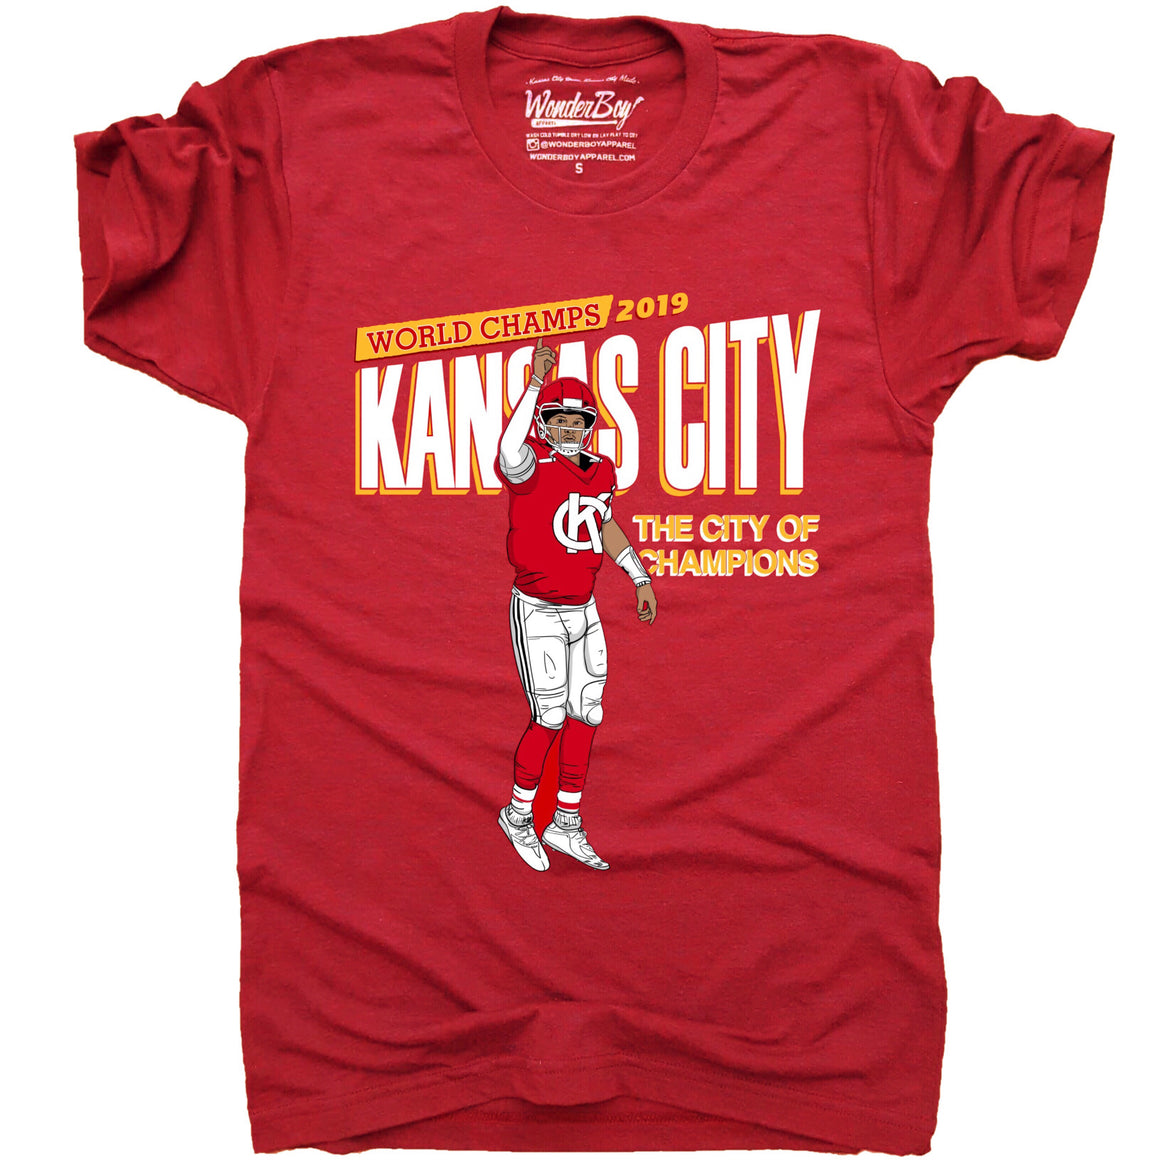 WONDERBOY APPAREL | KC CHAMPS T-SHIRT - RED